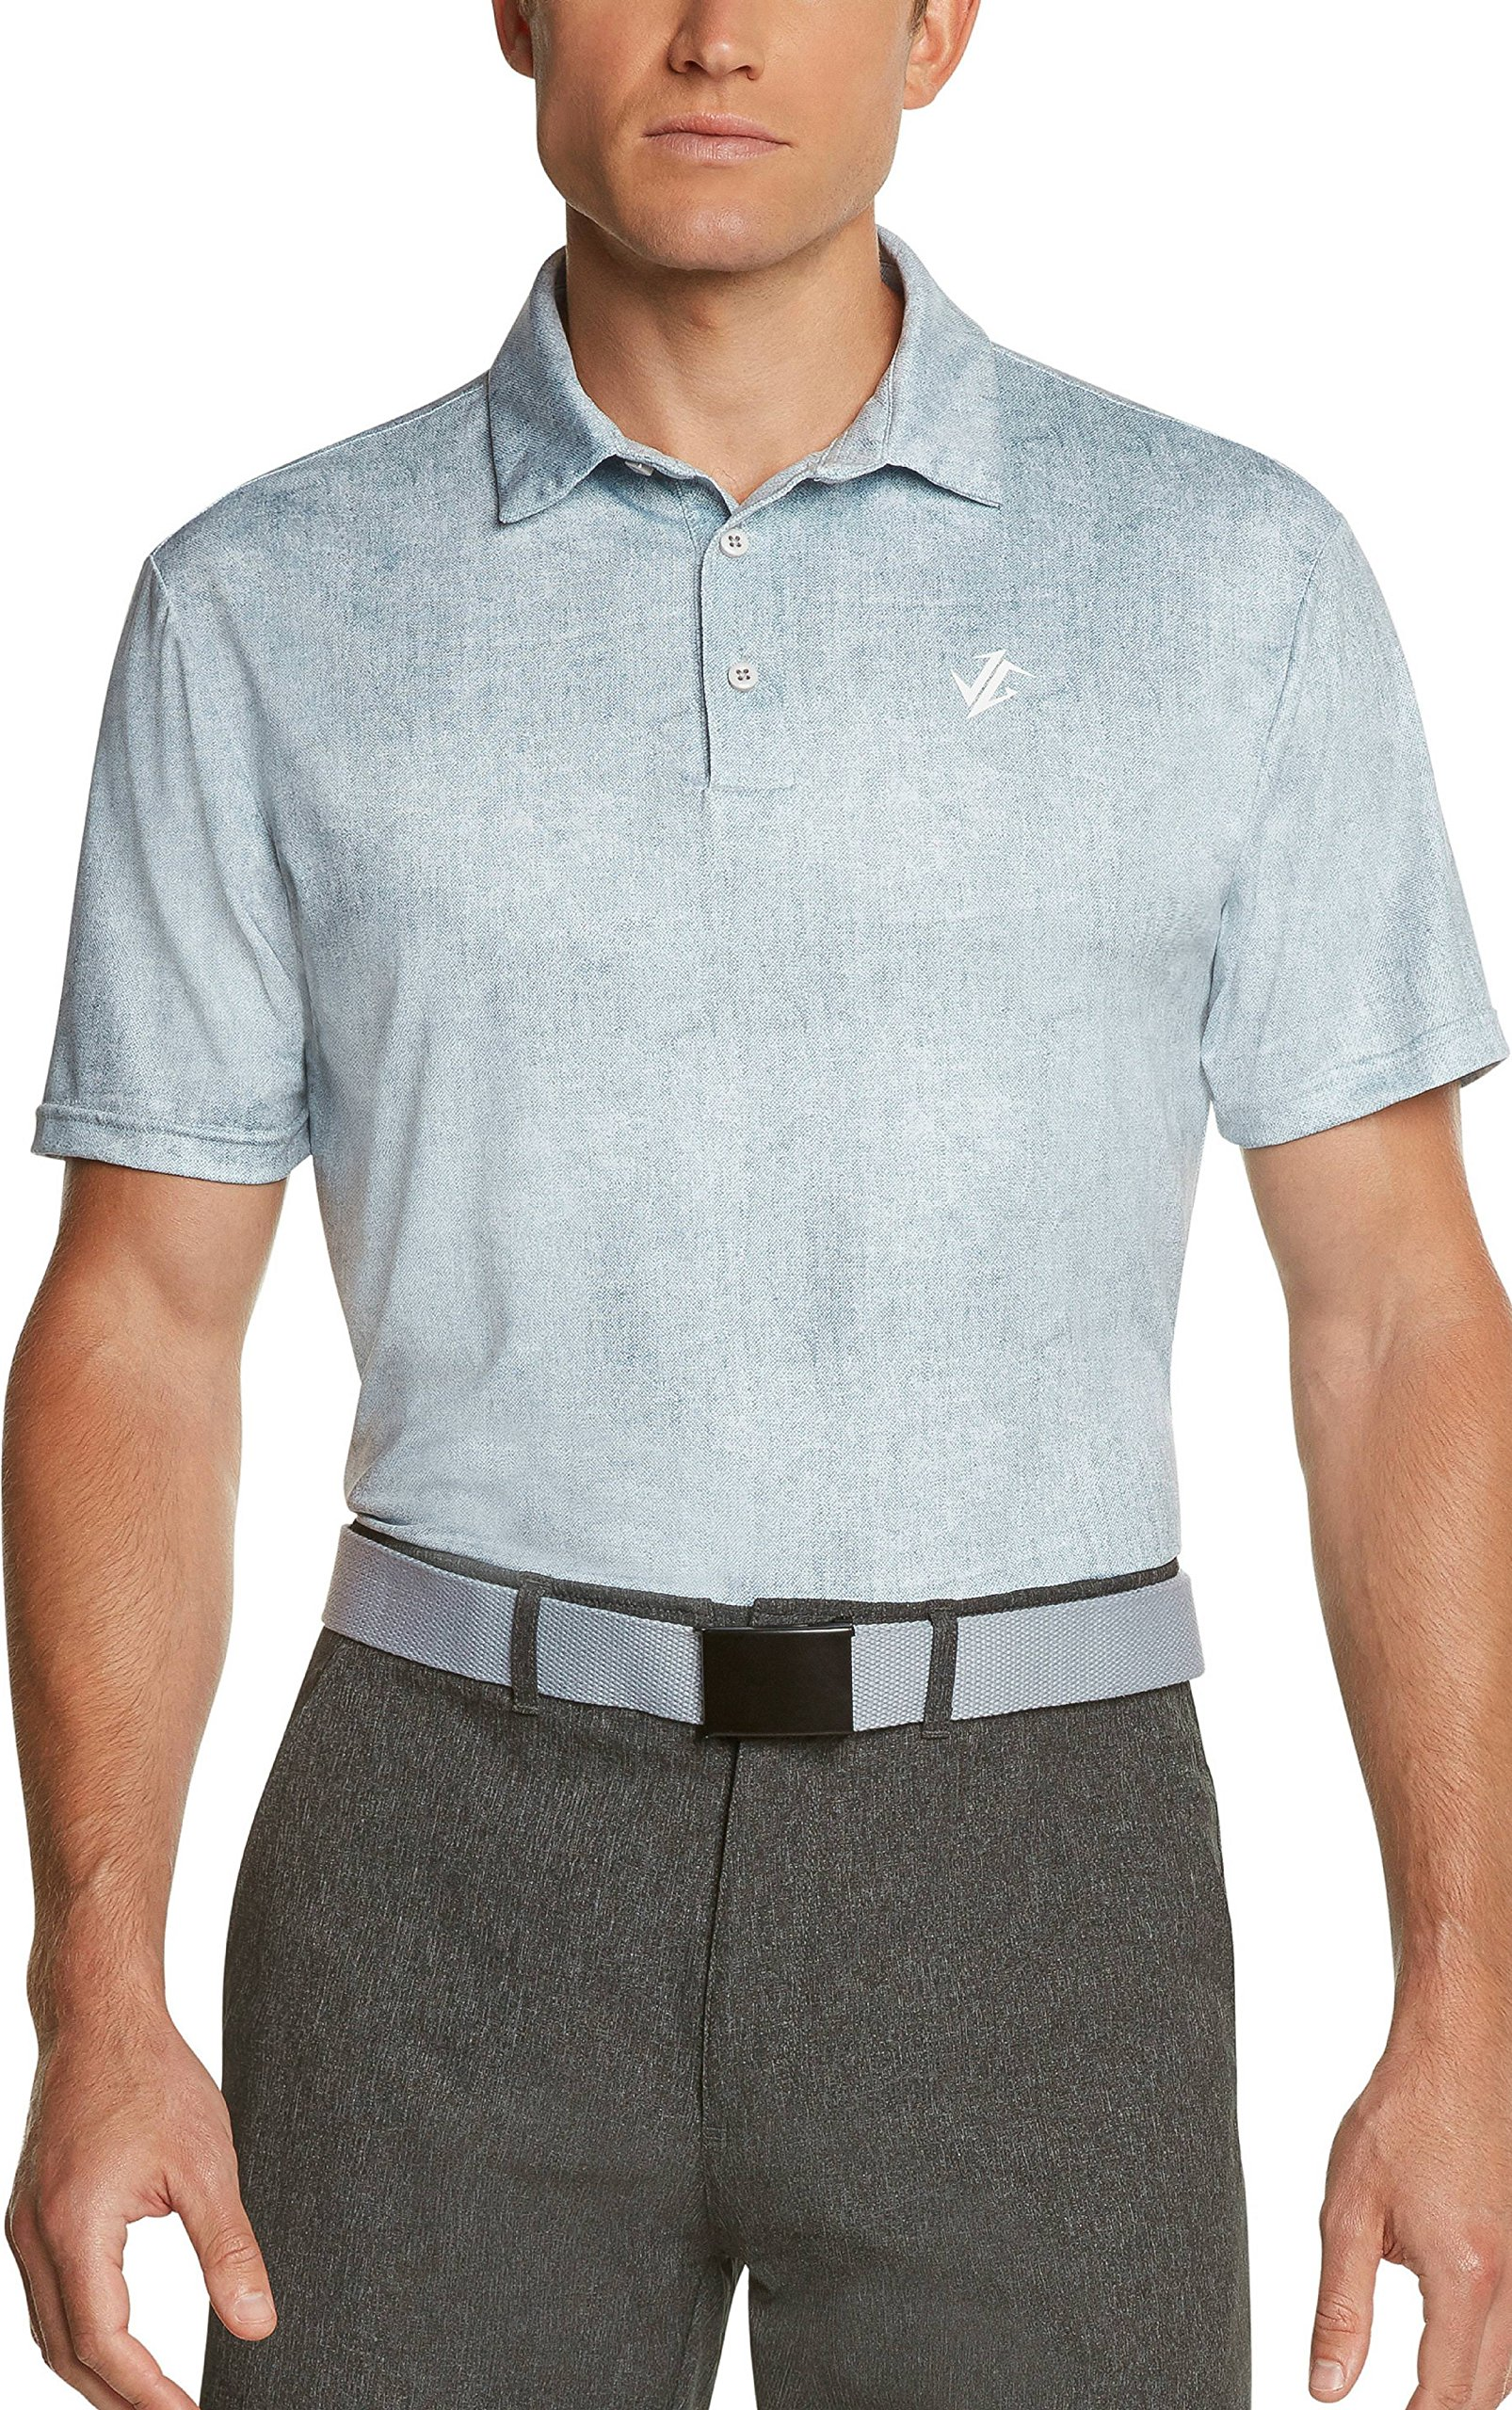 c51d33b52 Jolt Gear Golf Shirts for Men - Dry Fit Short-Sleeve Polo, Athletic Casual